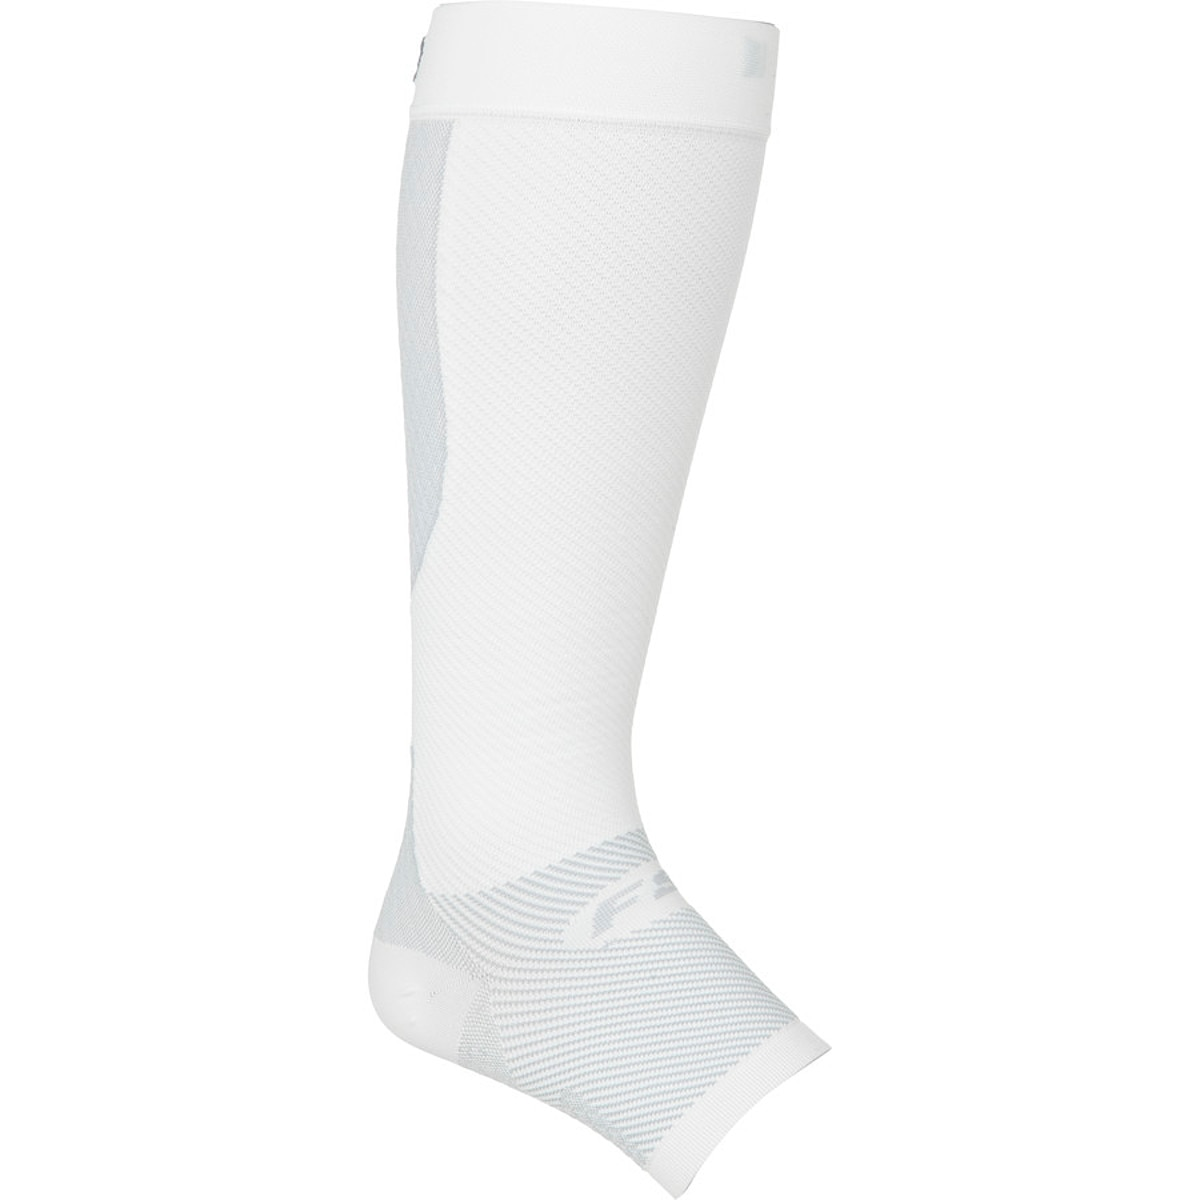 Feetures! Plantar Fasciitis Plus Performance Compression